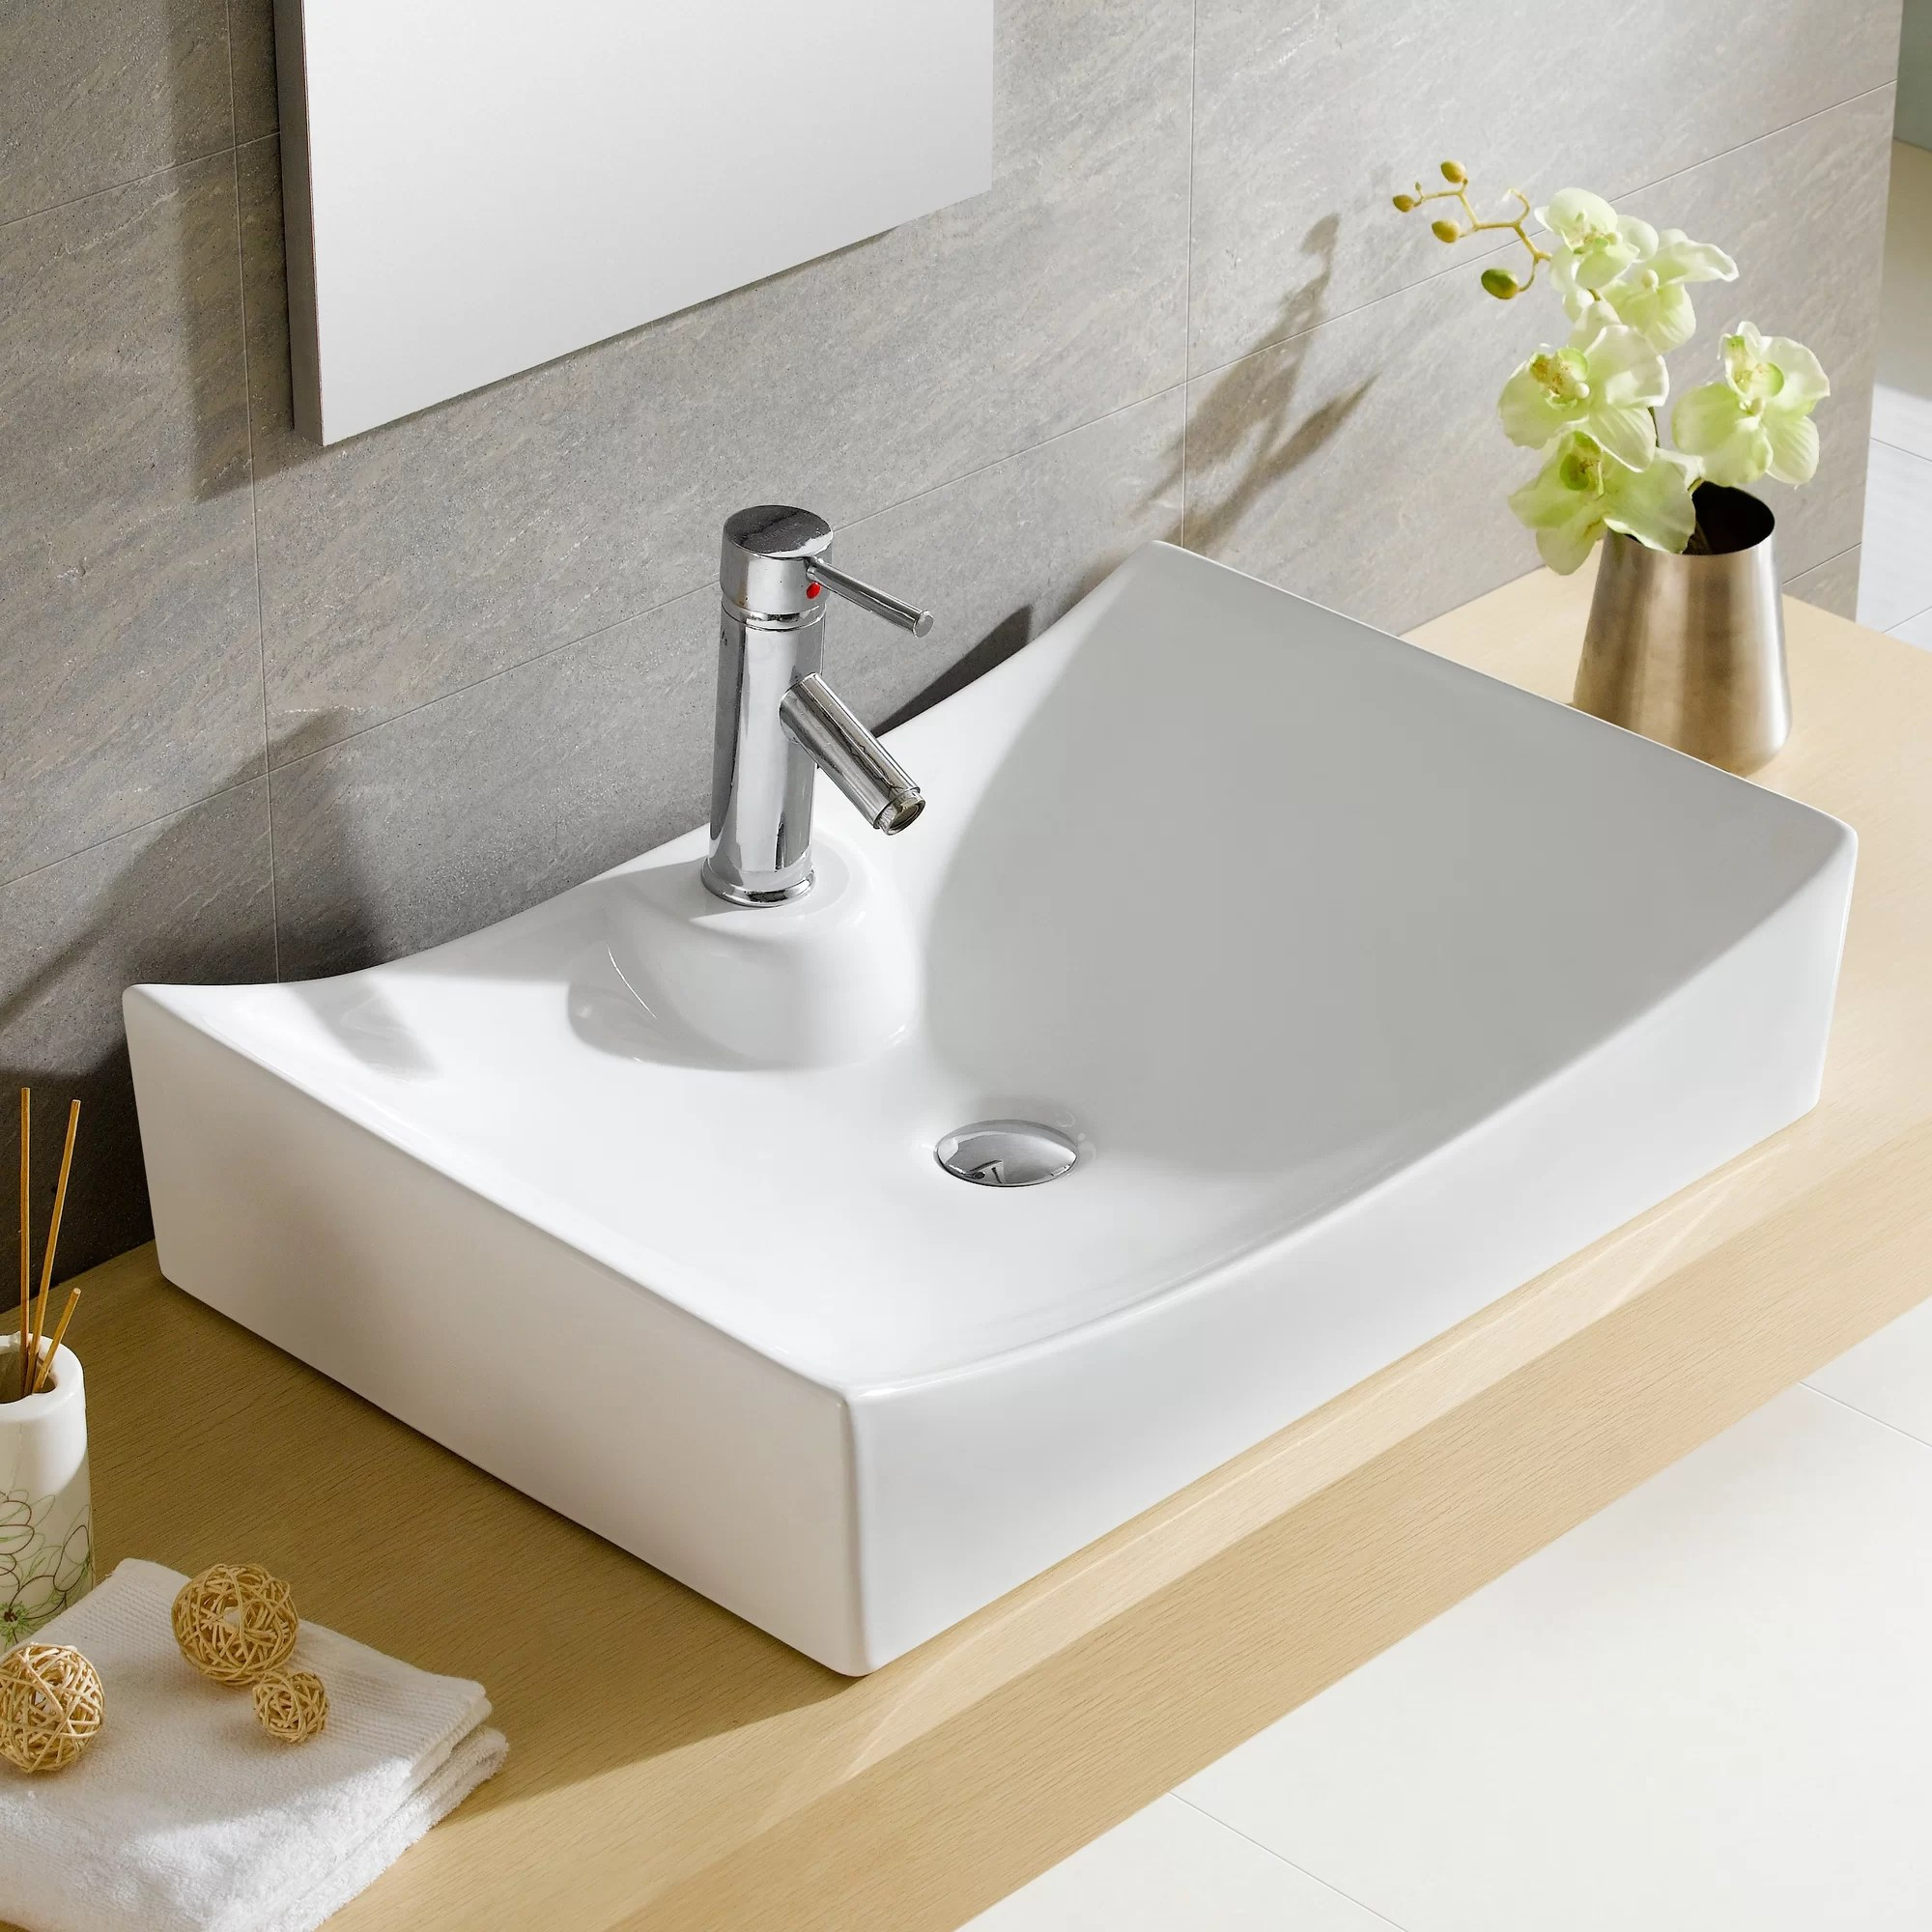 Designer Toilets And Sinks Fine Fixtures Modern Vitreous Bulging Square Vessel